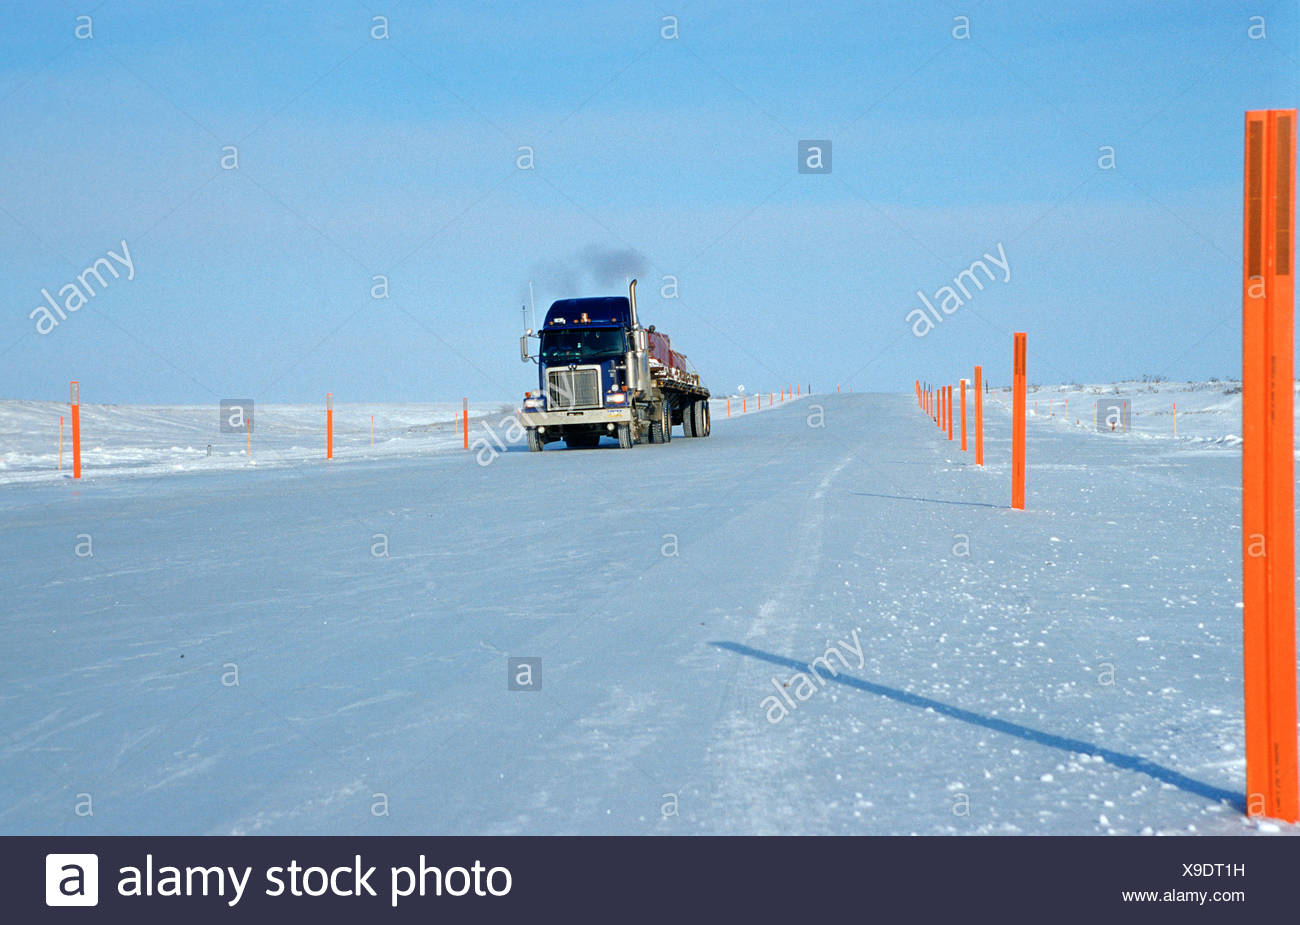 Truck driving on an ice road, built by oil companies and used to connect individual oil drilling sites in winter, Prudhoe Bay - Stock Image